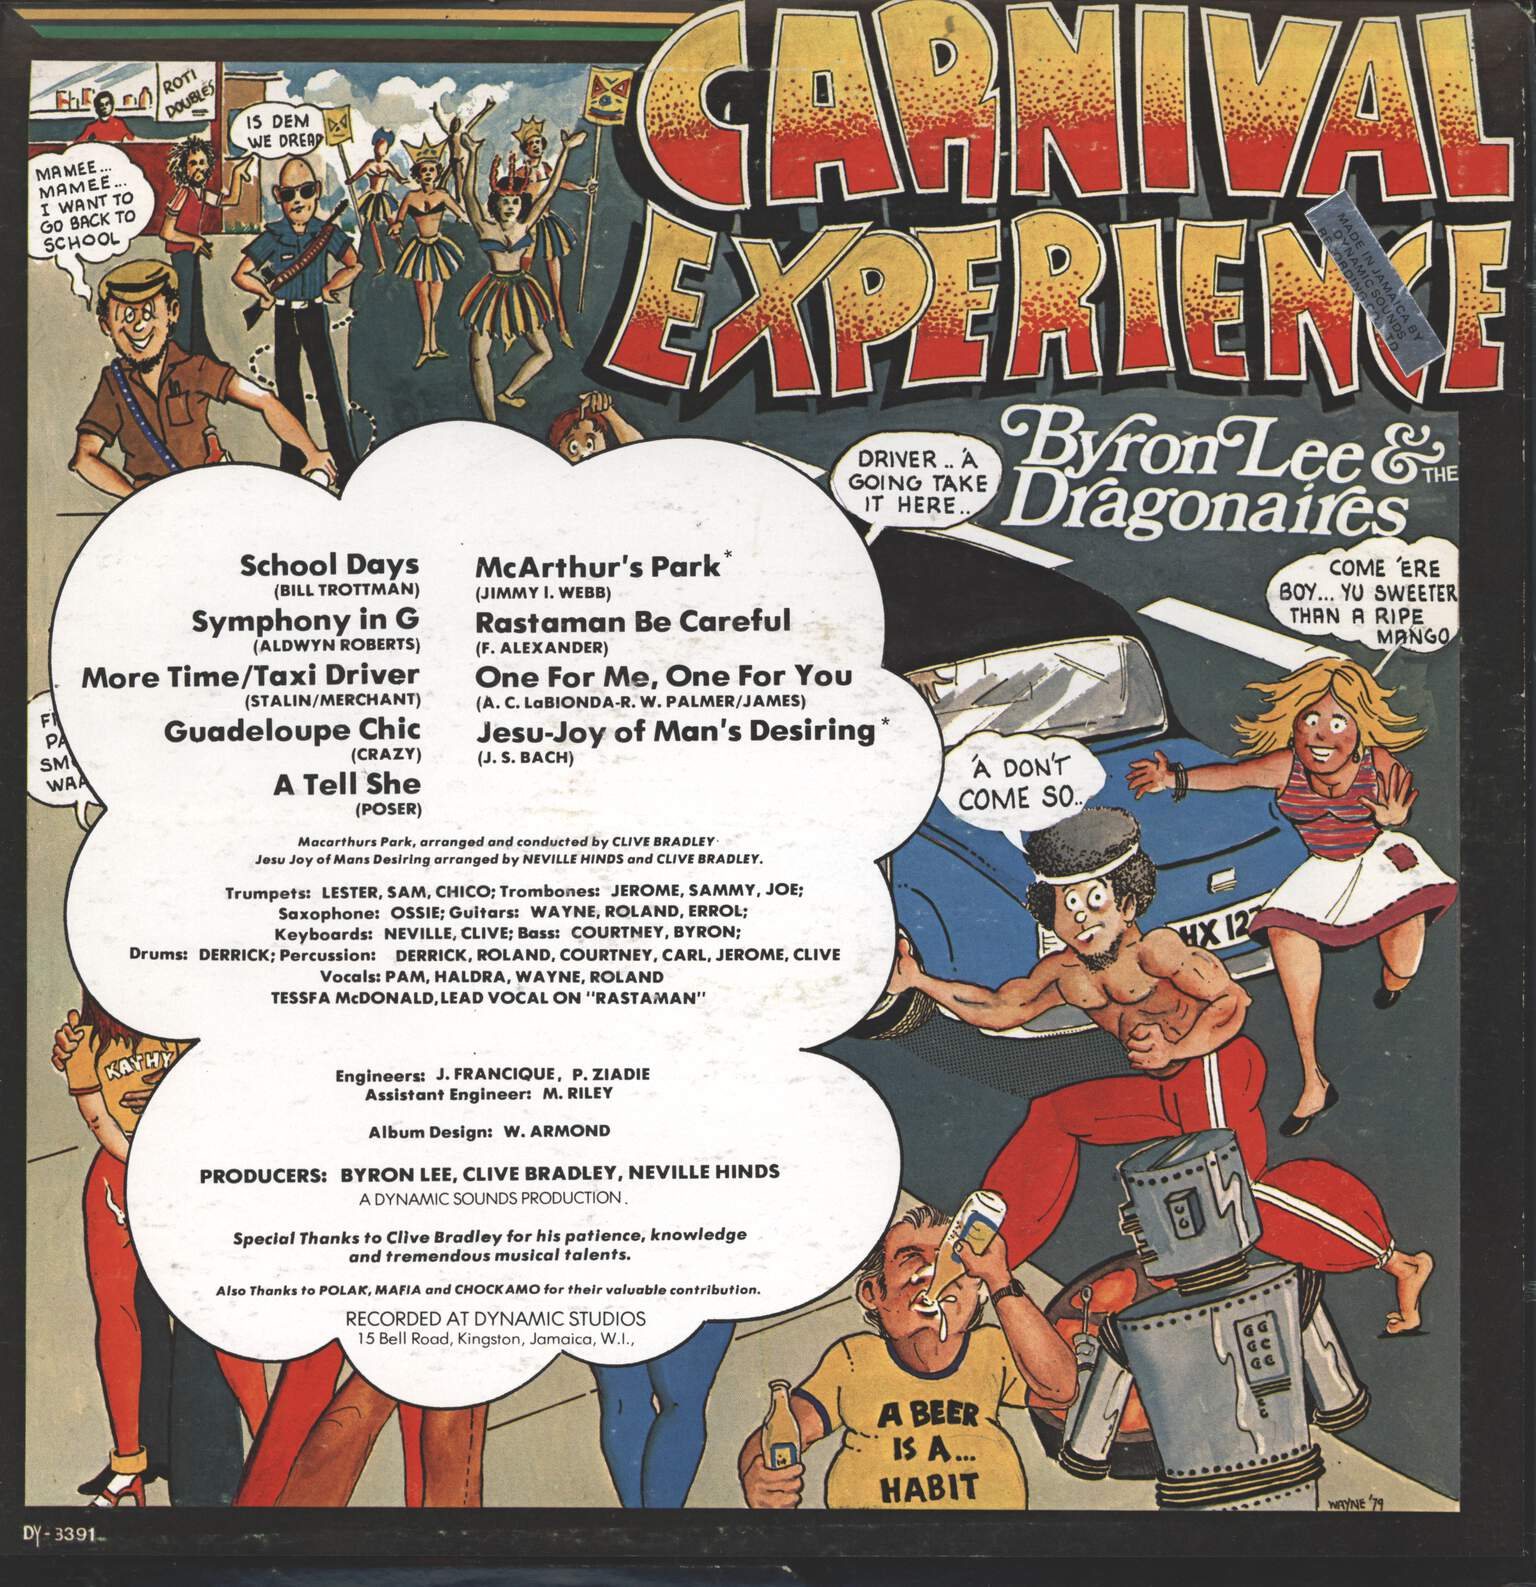 Byron Lee And The Dragonaires: Carnival Experience, LP (Vinyl)